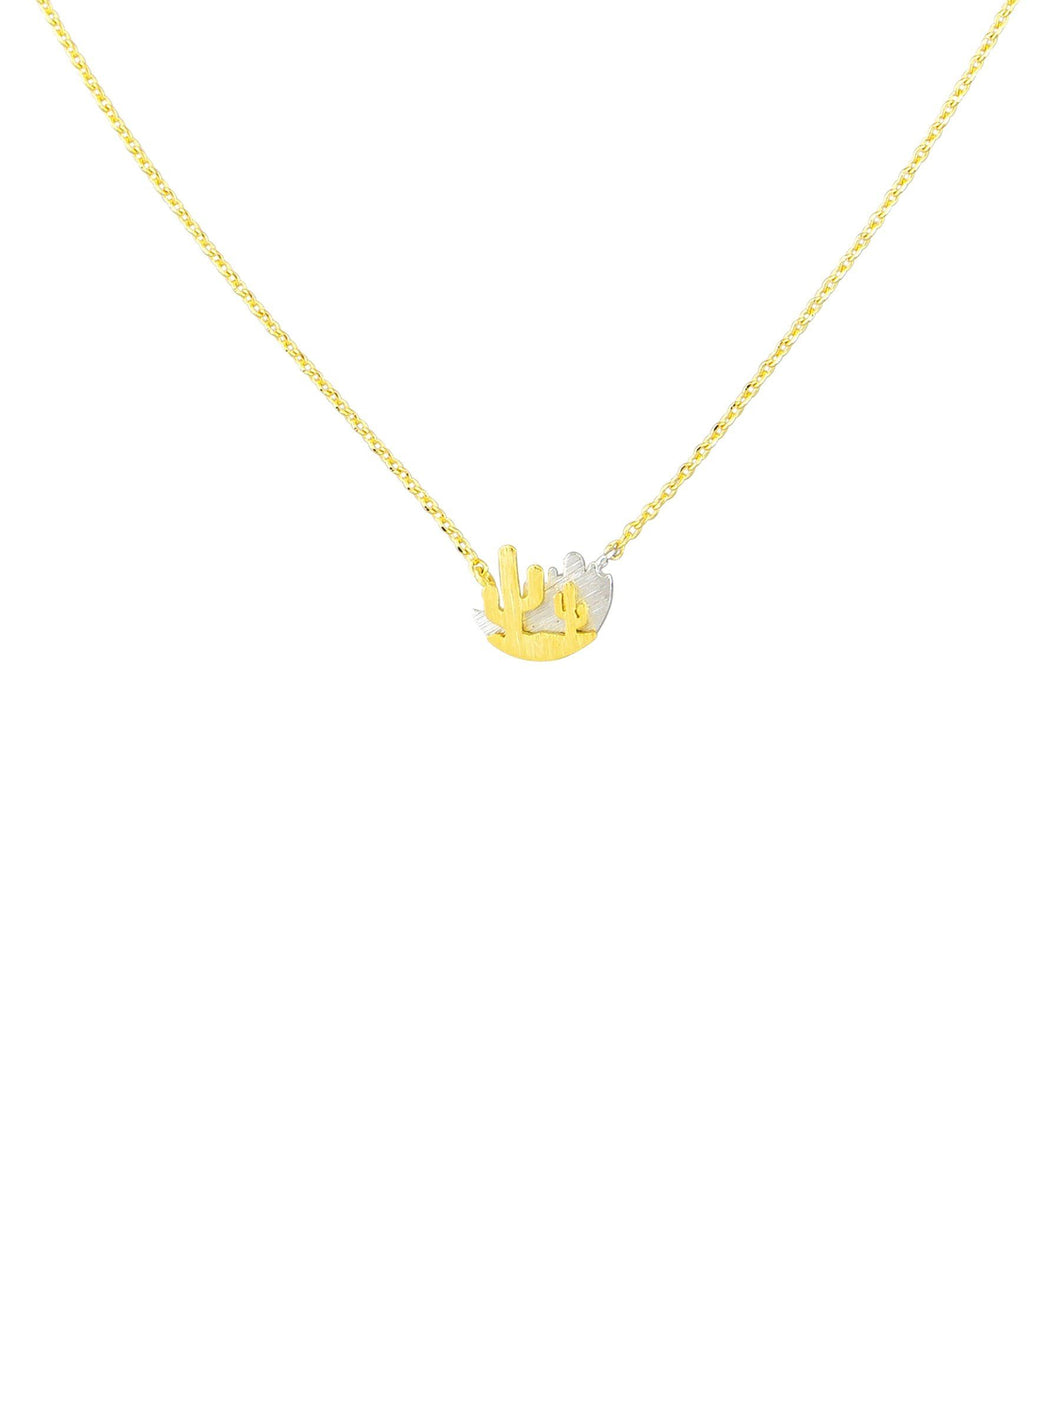 Tiger Tree Gold Wild West Necklace - Global Free Style